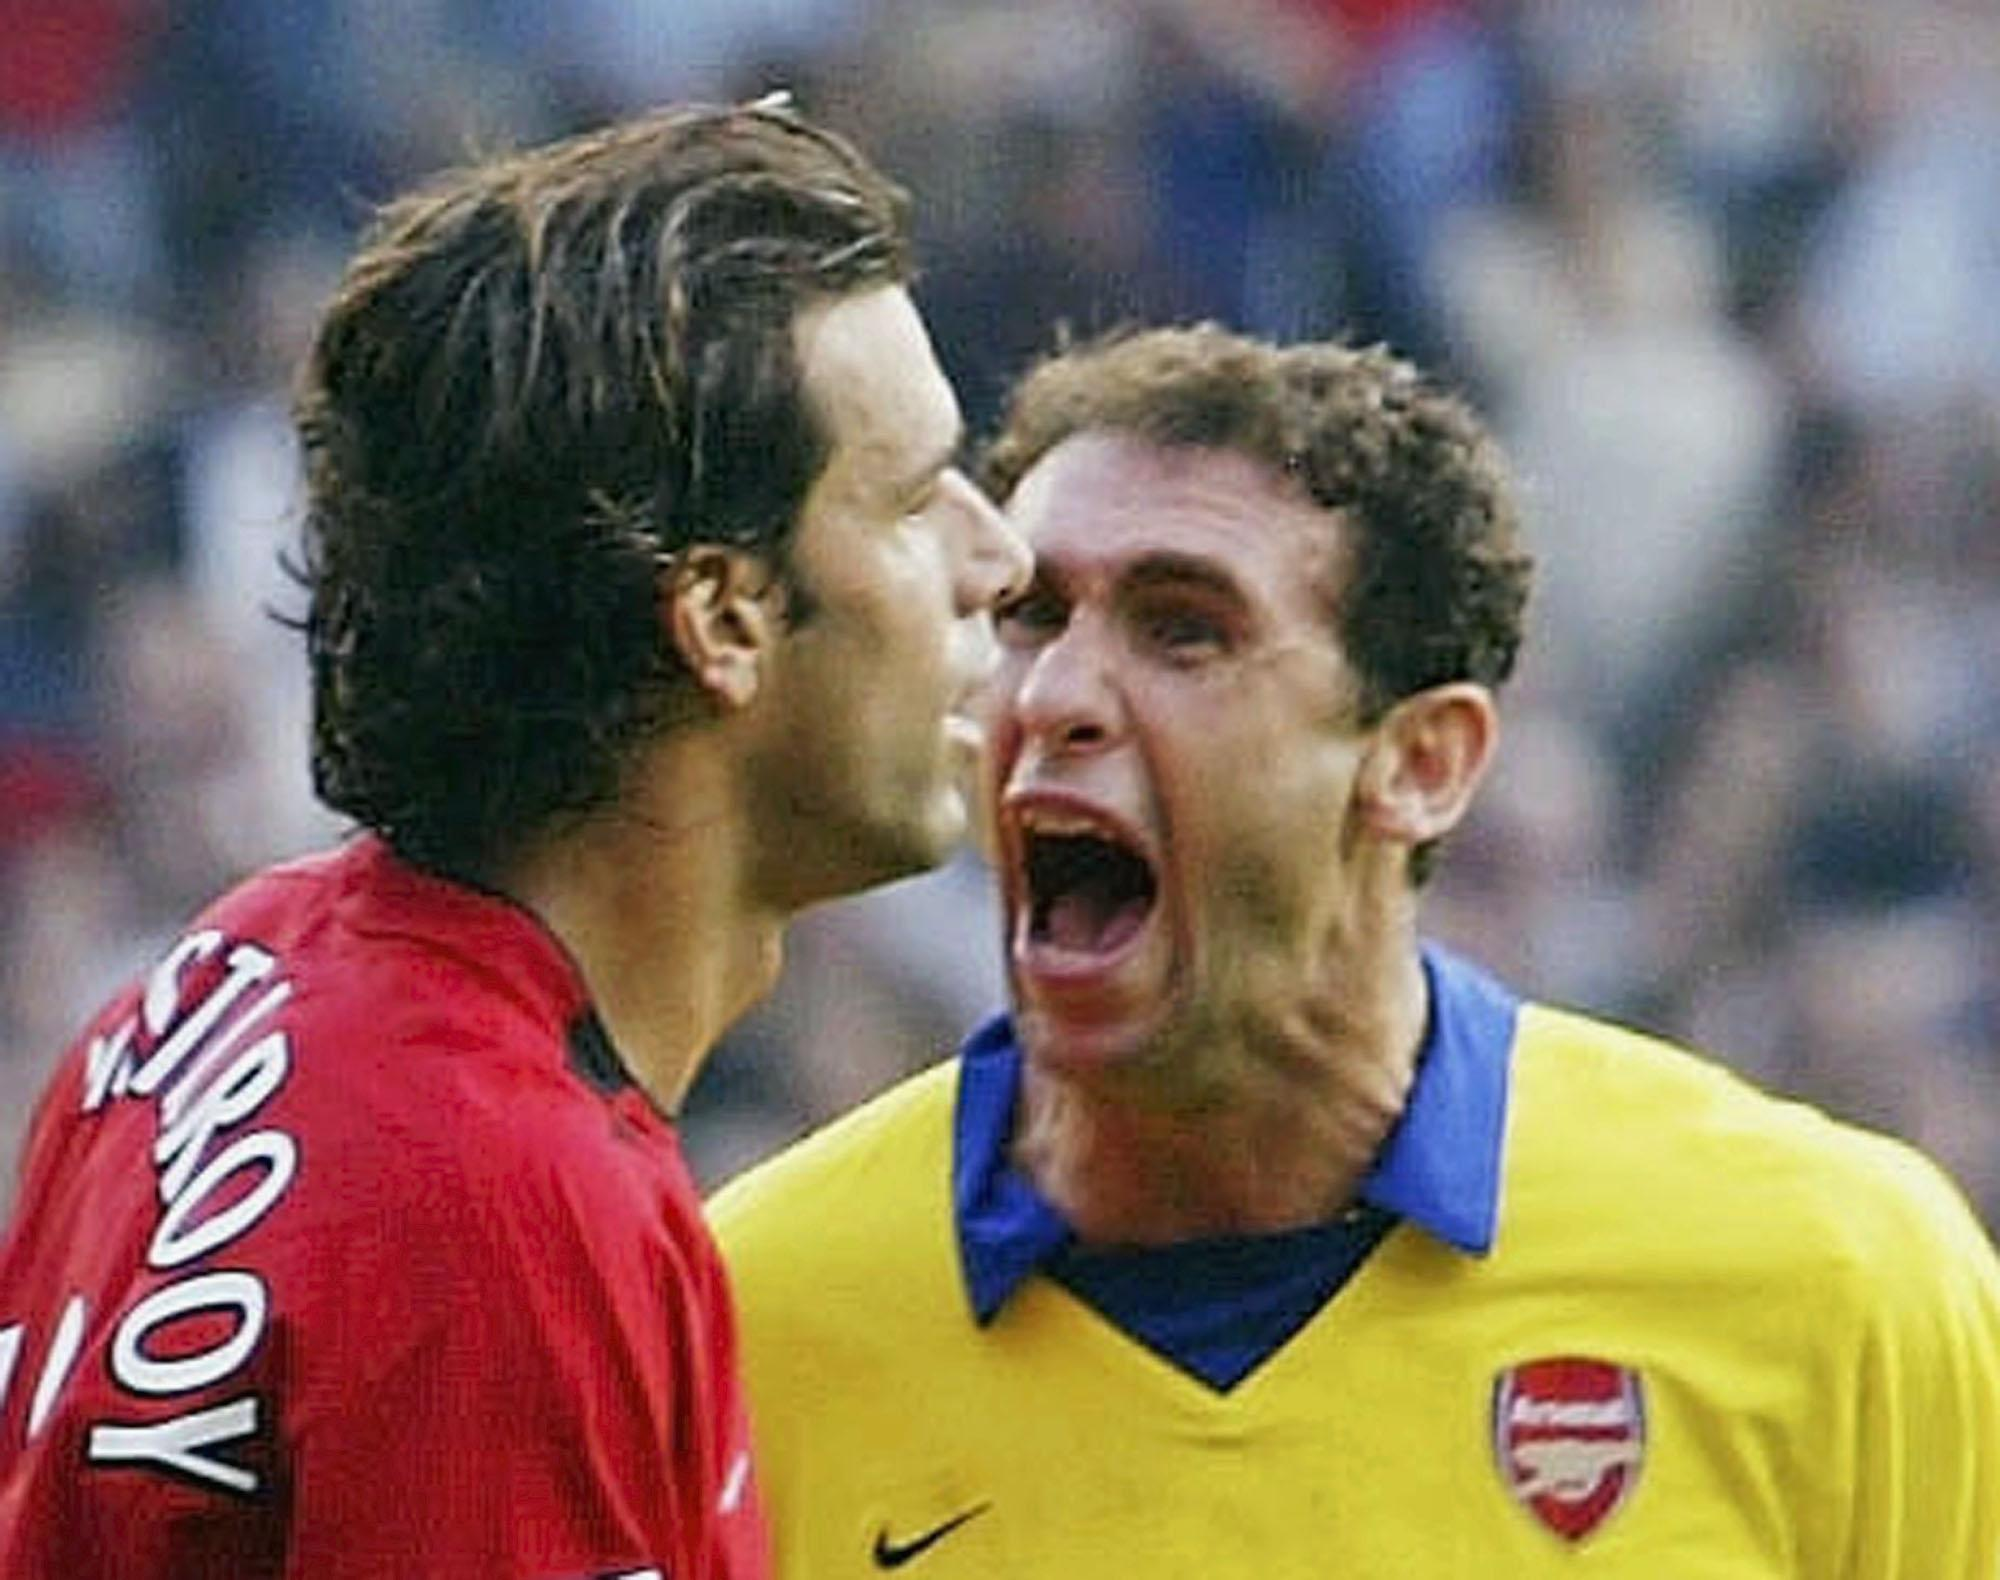 The game ended 0-0 and Arsenal would go on to win the league that year without losing a game